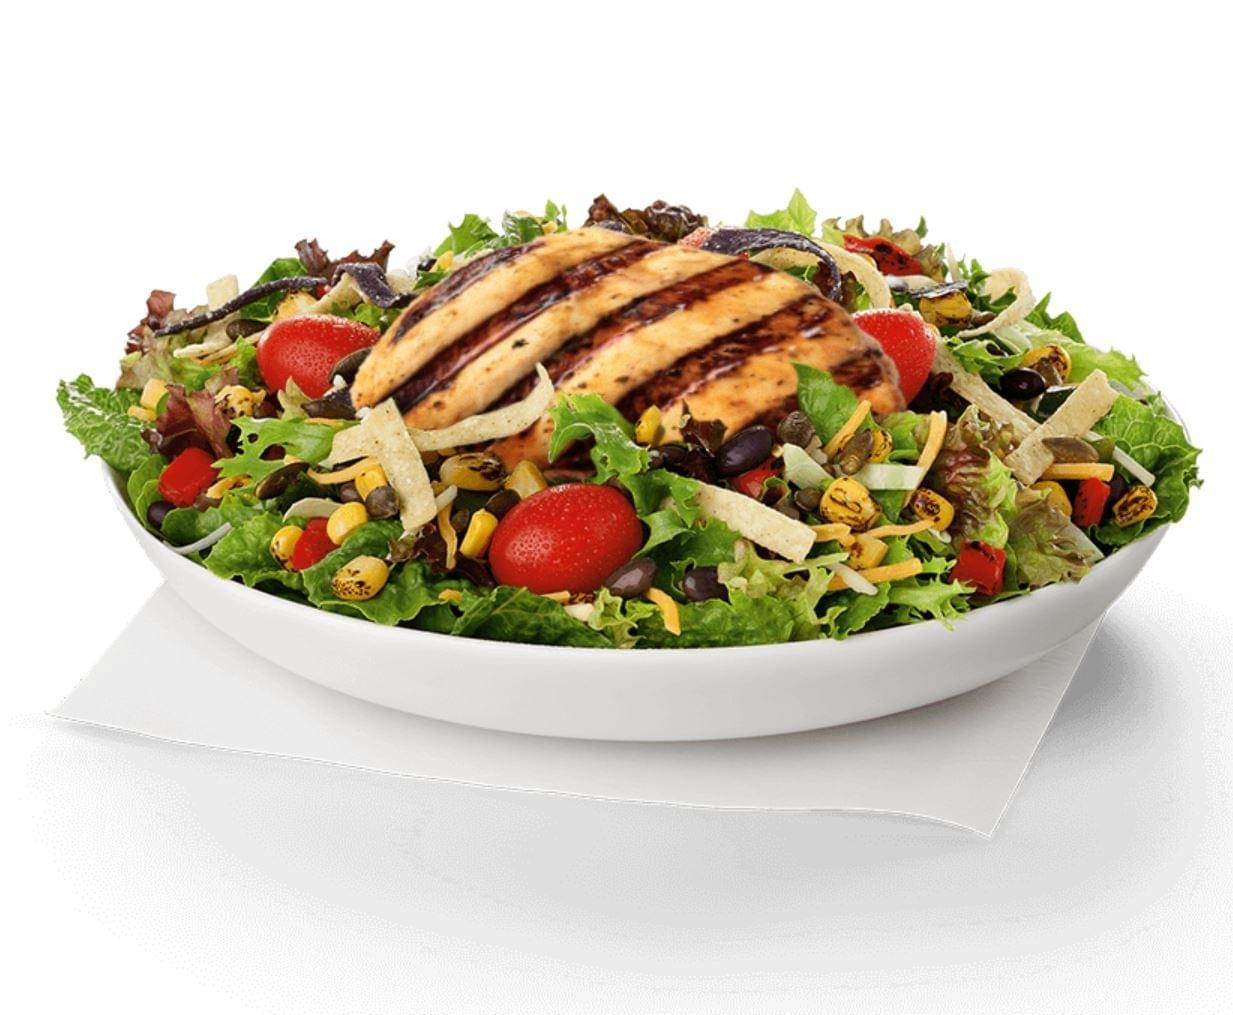 Chick-fil-A Spicy Southwest Salad with Grilled Chicken Nutrition Facts